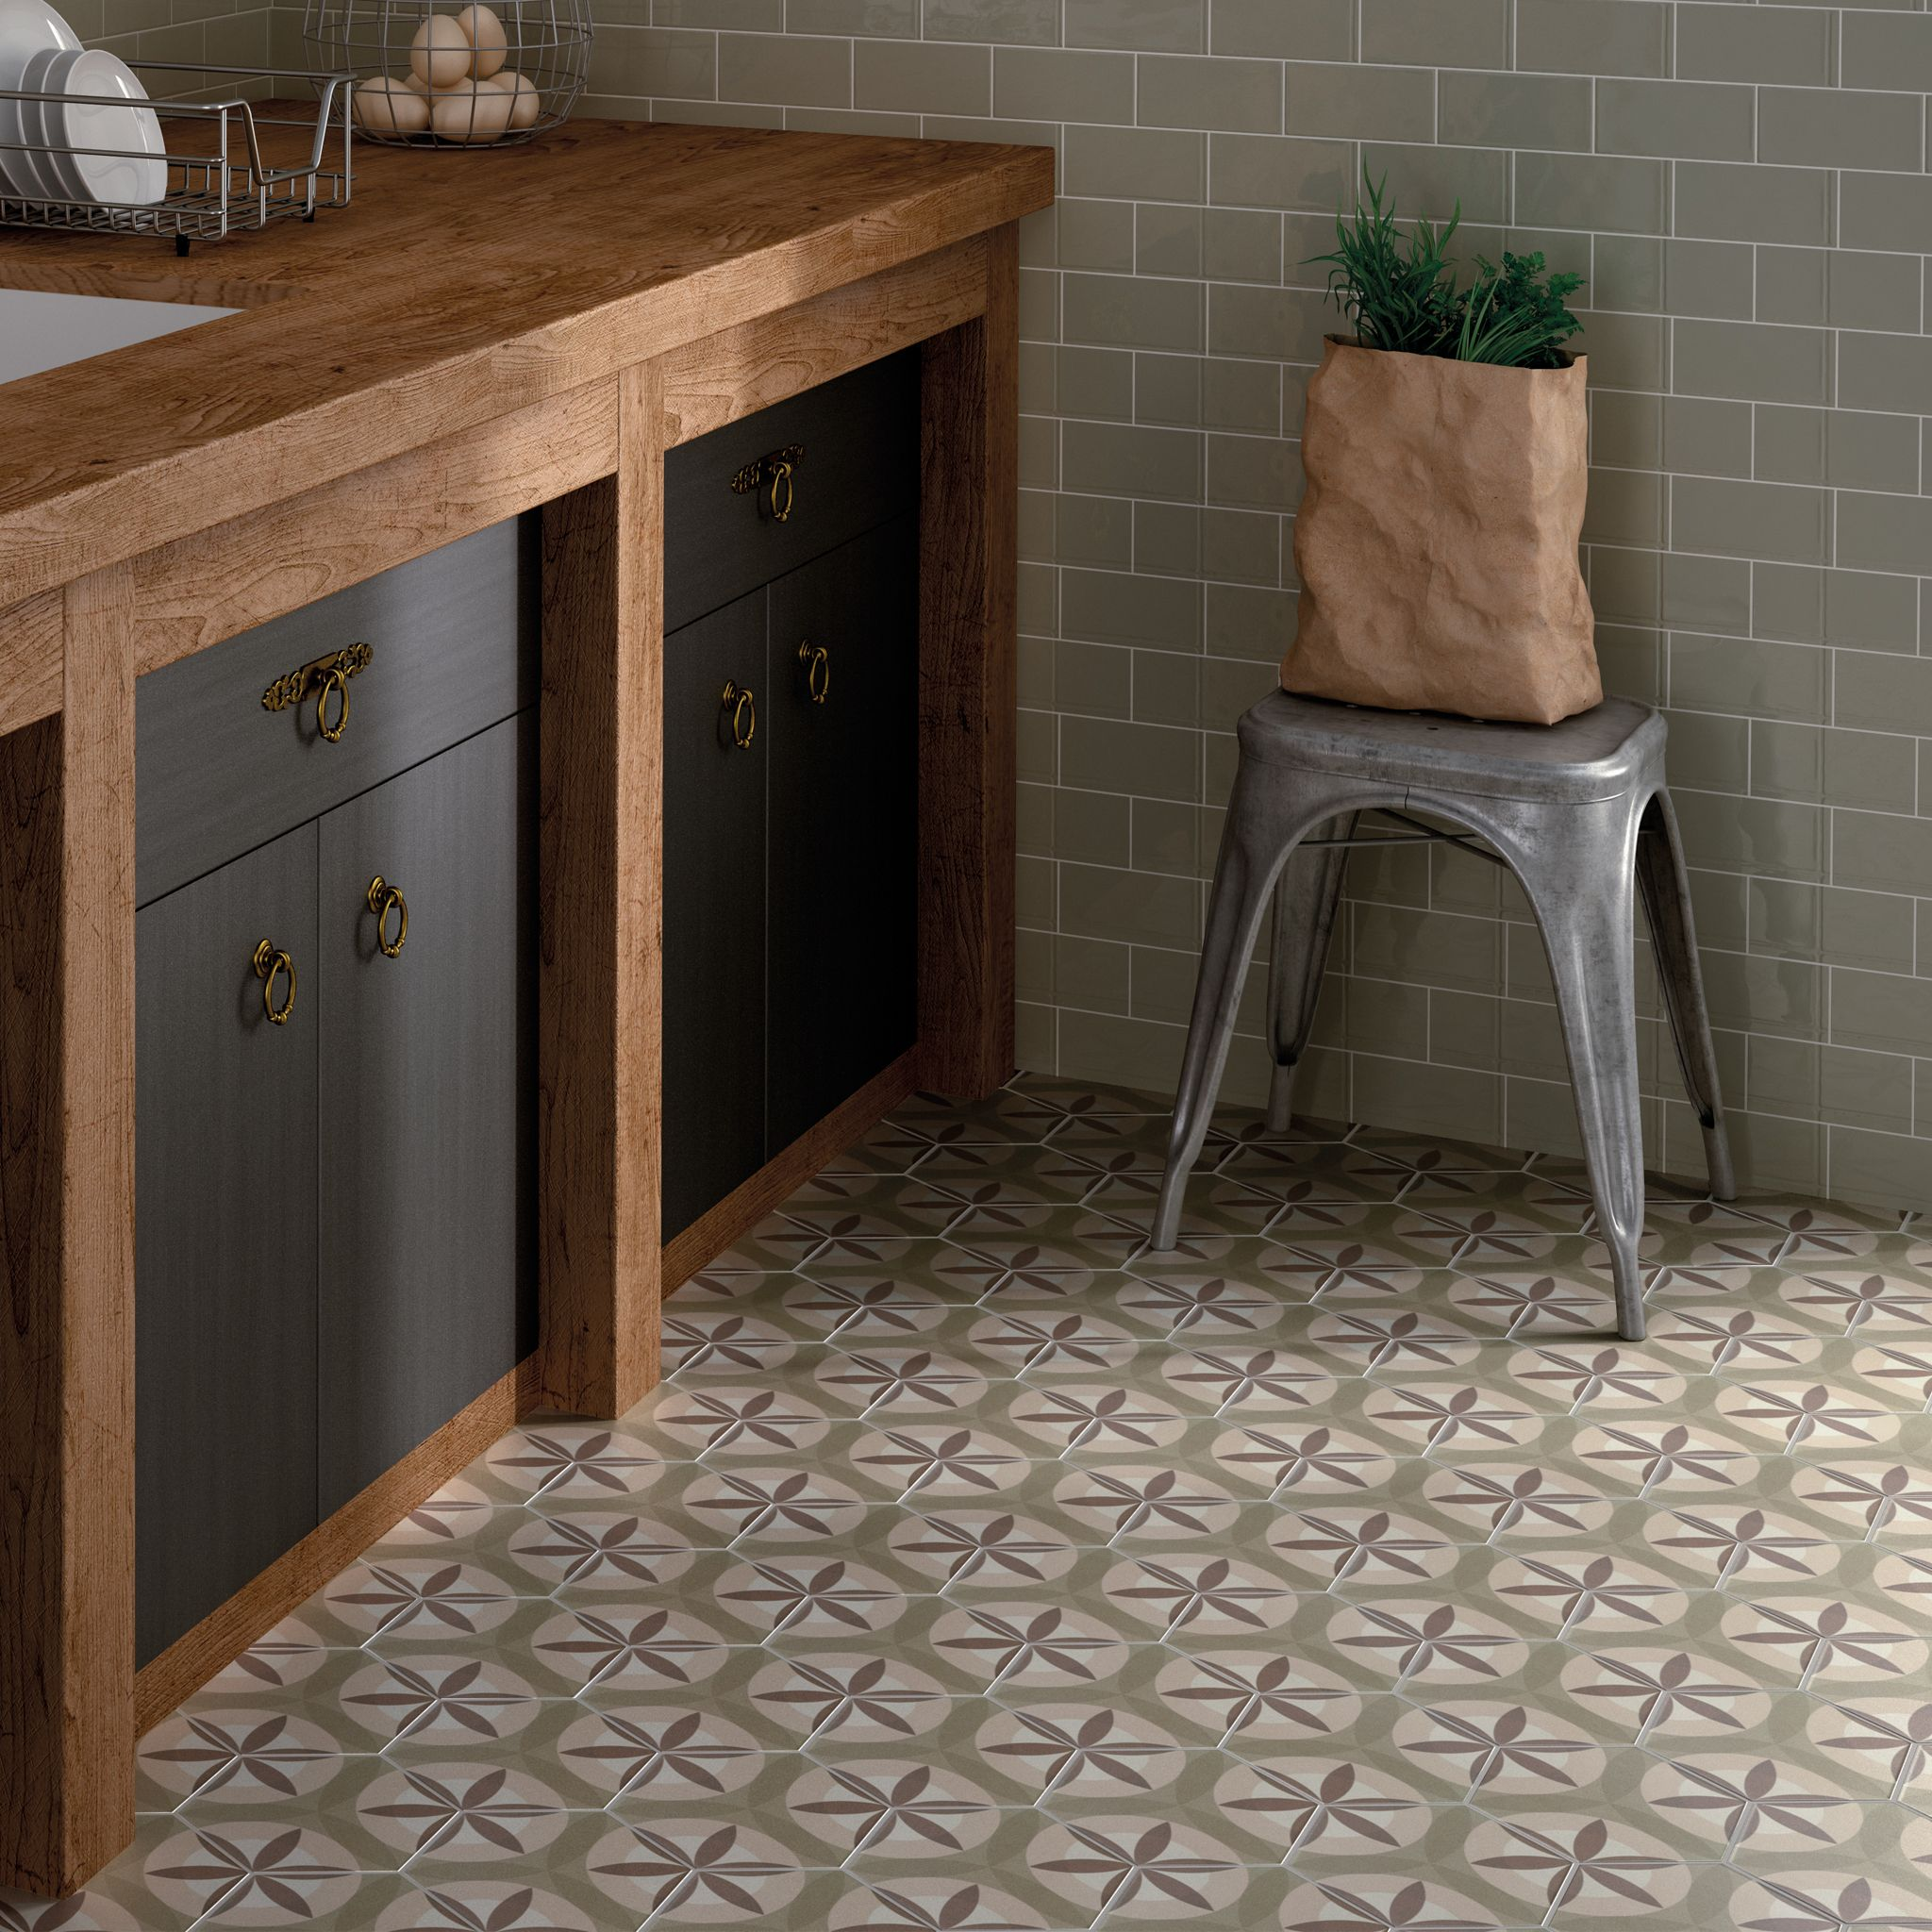 Küchen Dekorplatte Hexagon Leaf Cream Pattern Reto Tiles Used As Kitchen